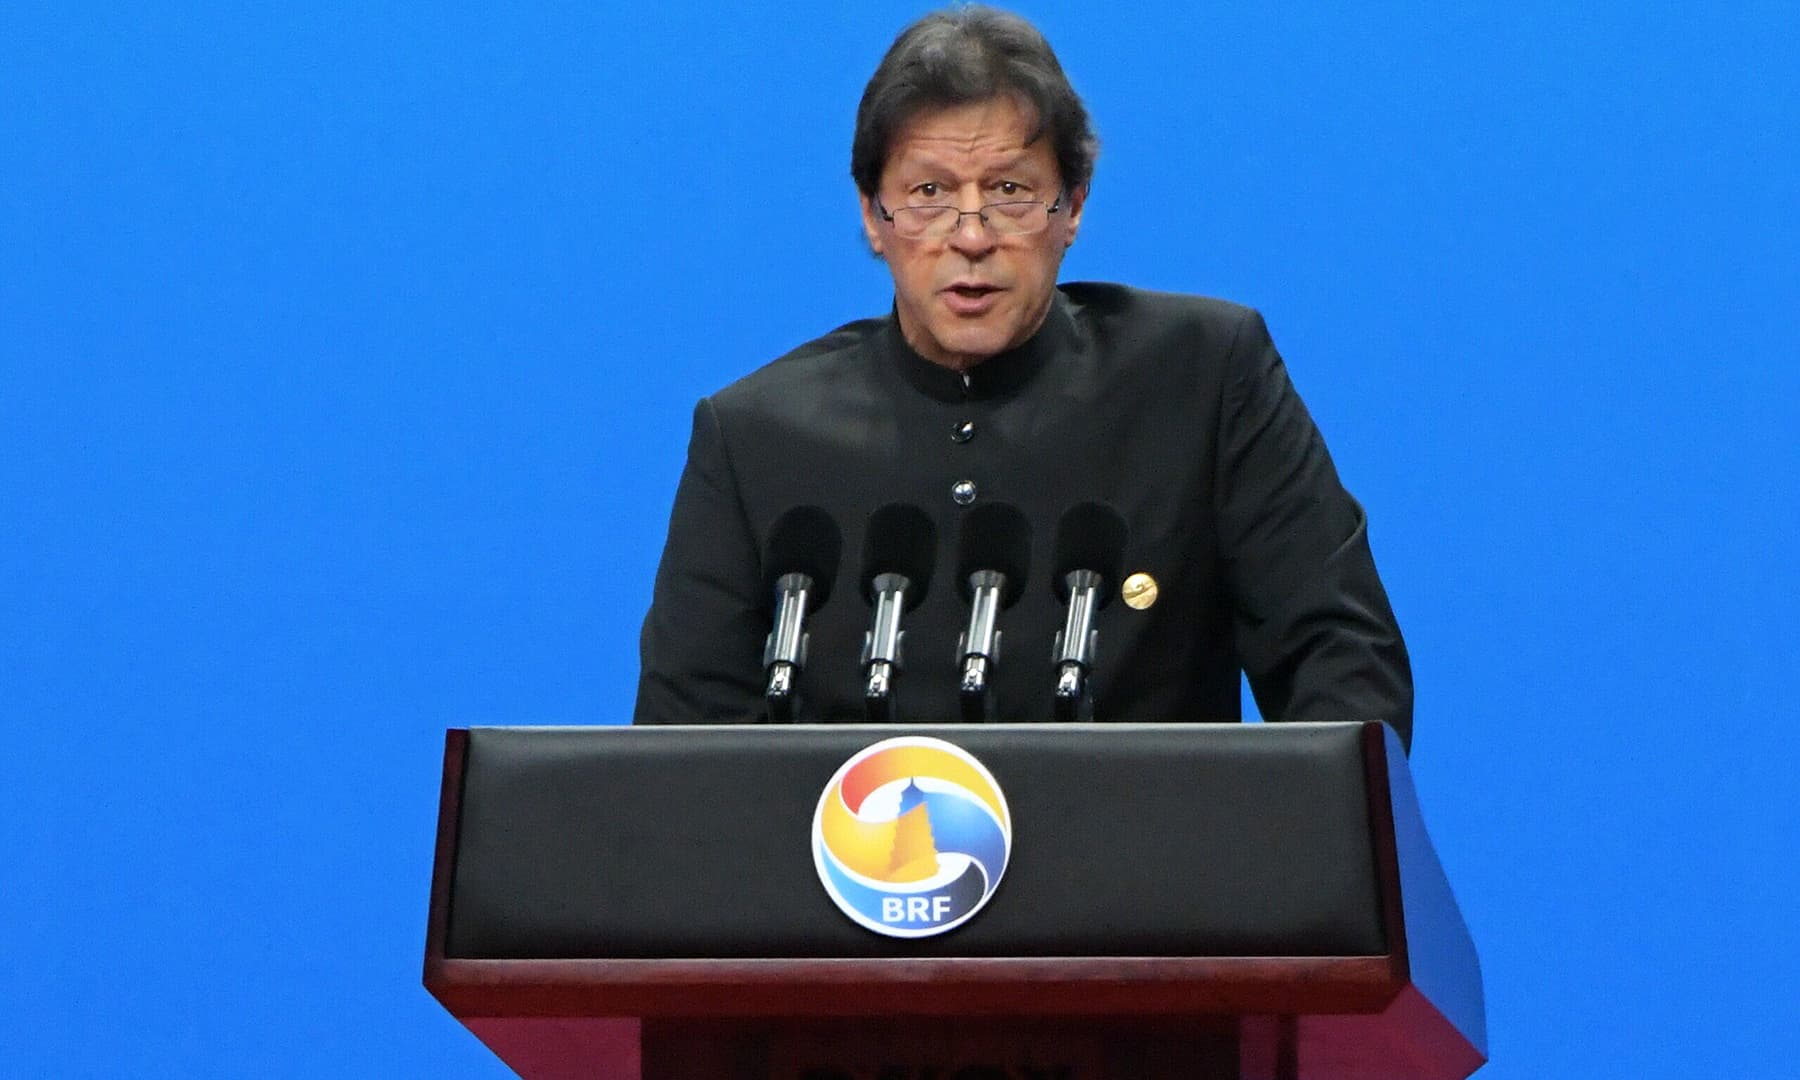 Prime Minister Imran Khan speaks during the opening ceremony of the Belt and Road Forum in Beijing on April 26. — AFP